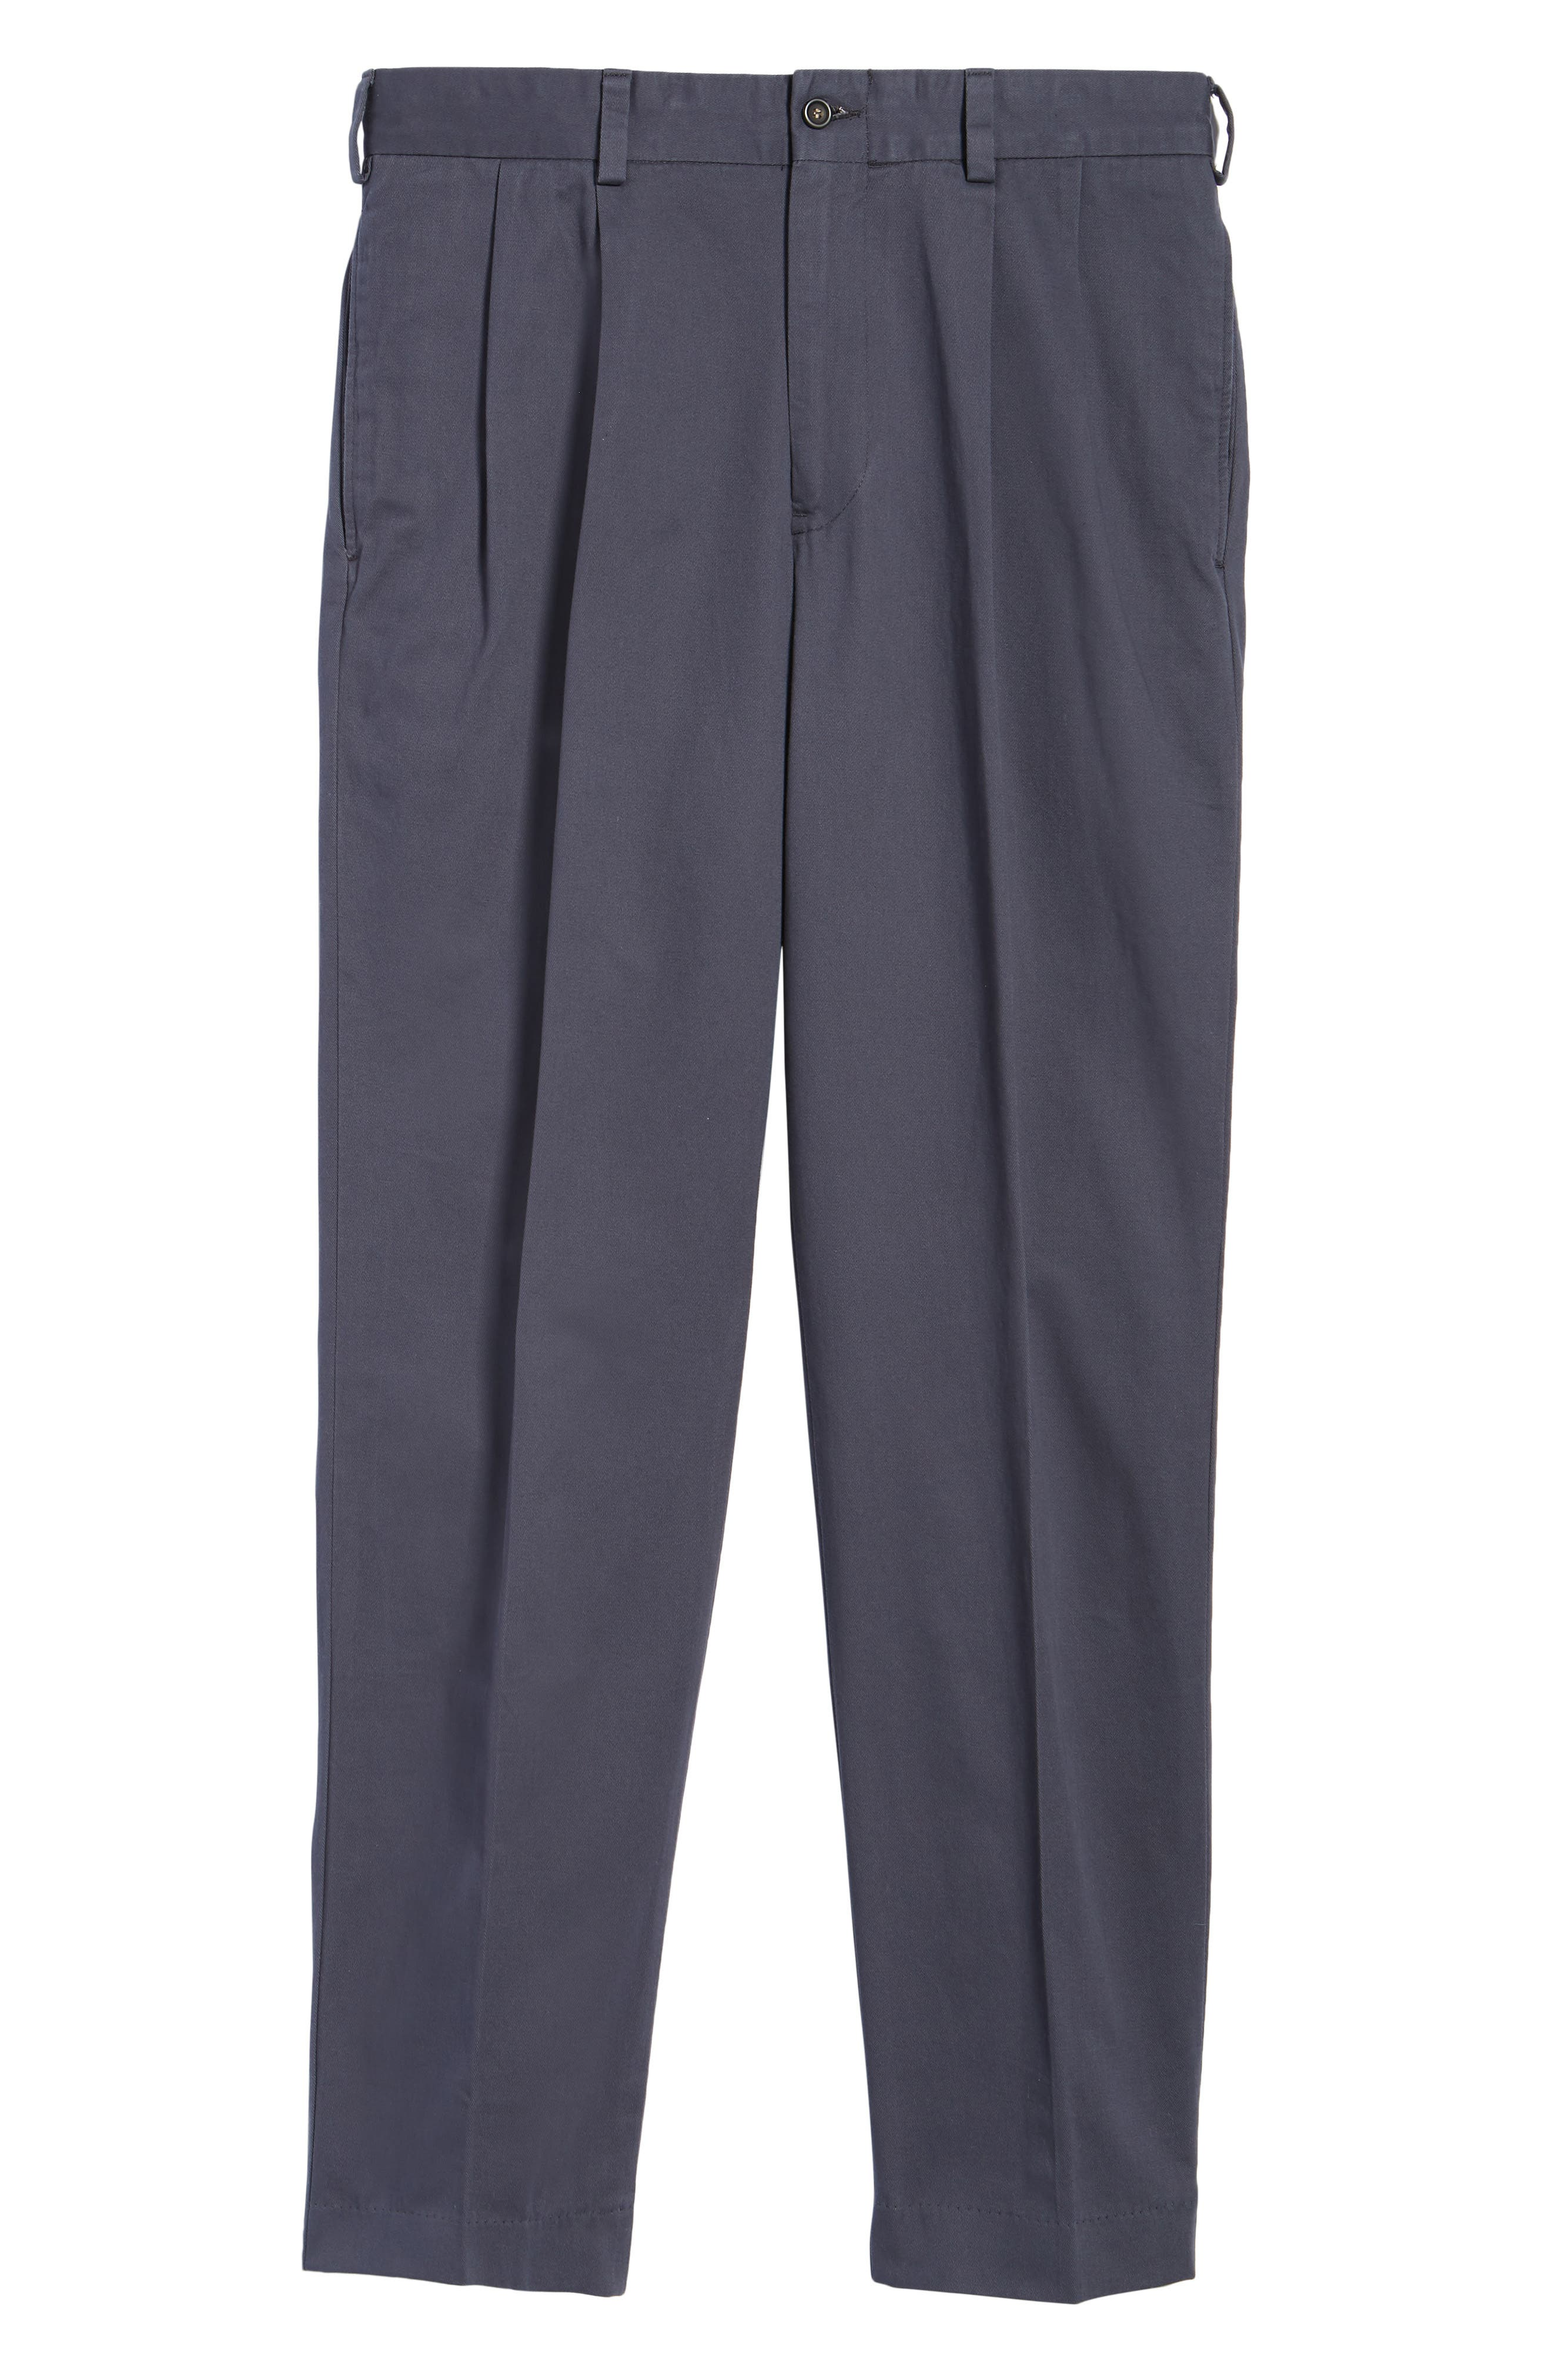 M2 Classic Fit Vintage Twill Pleated Pants,                             Alternate thumbnail 6, color,                             Navy